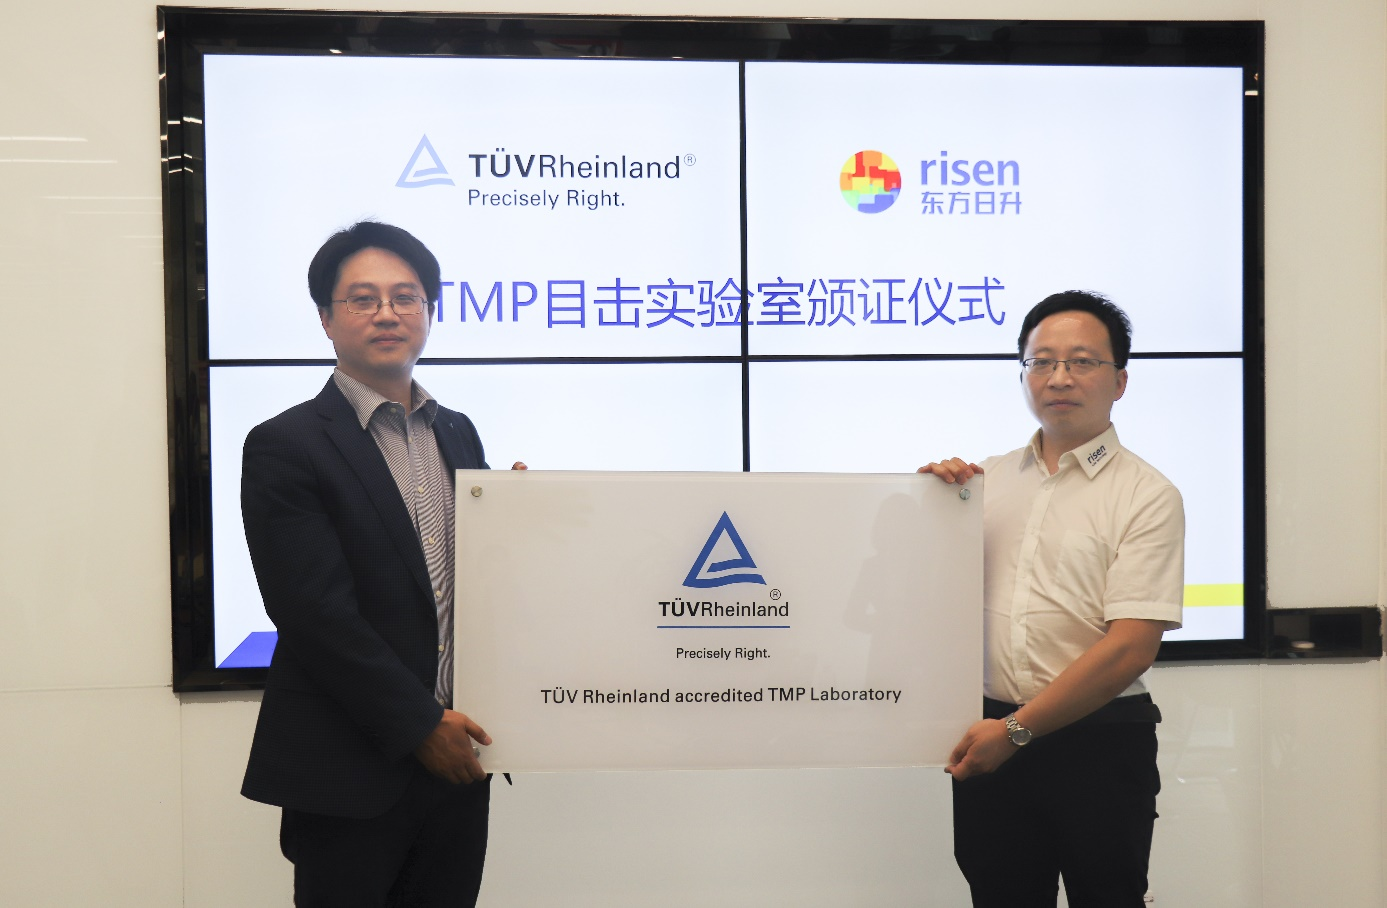 Risen Energy said its testing and calibration facilities have become a TUV Rheinland accredited 'TMP' Lab. Image: Risen Energy